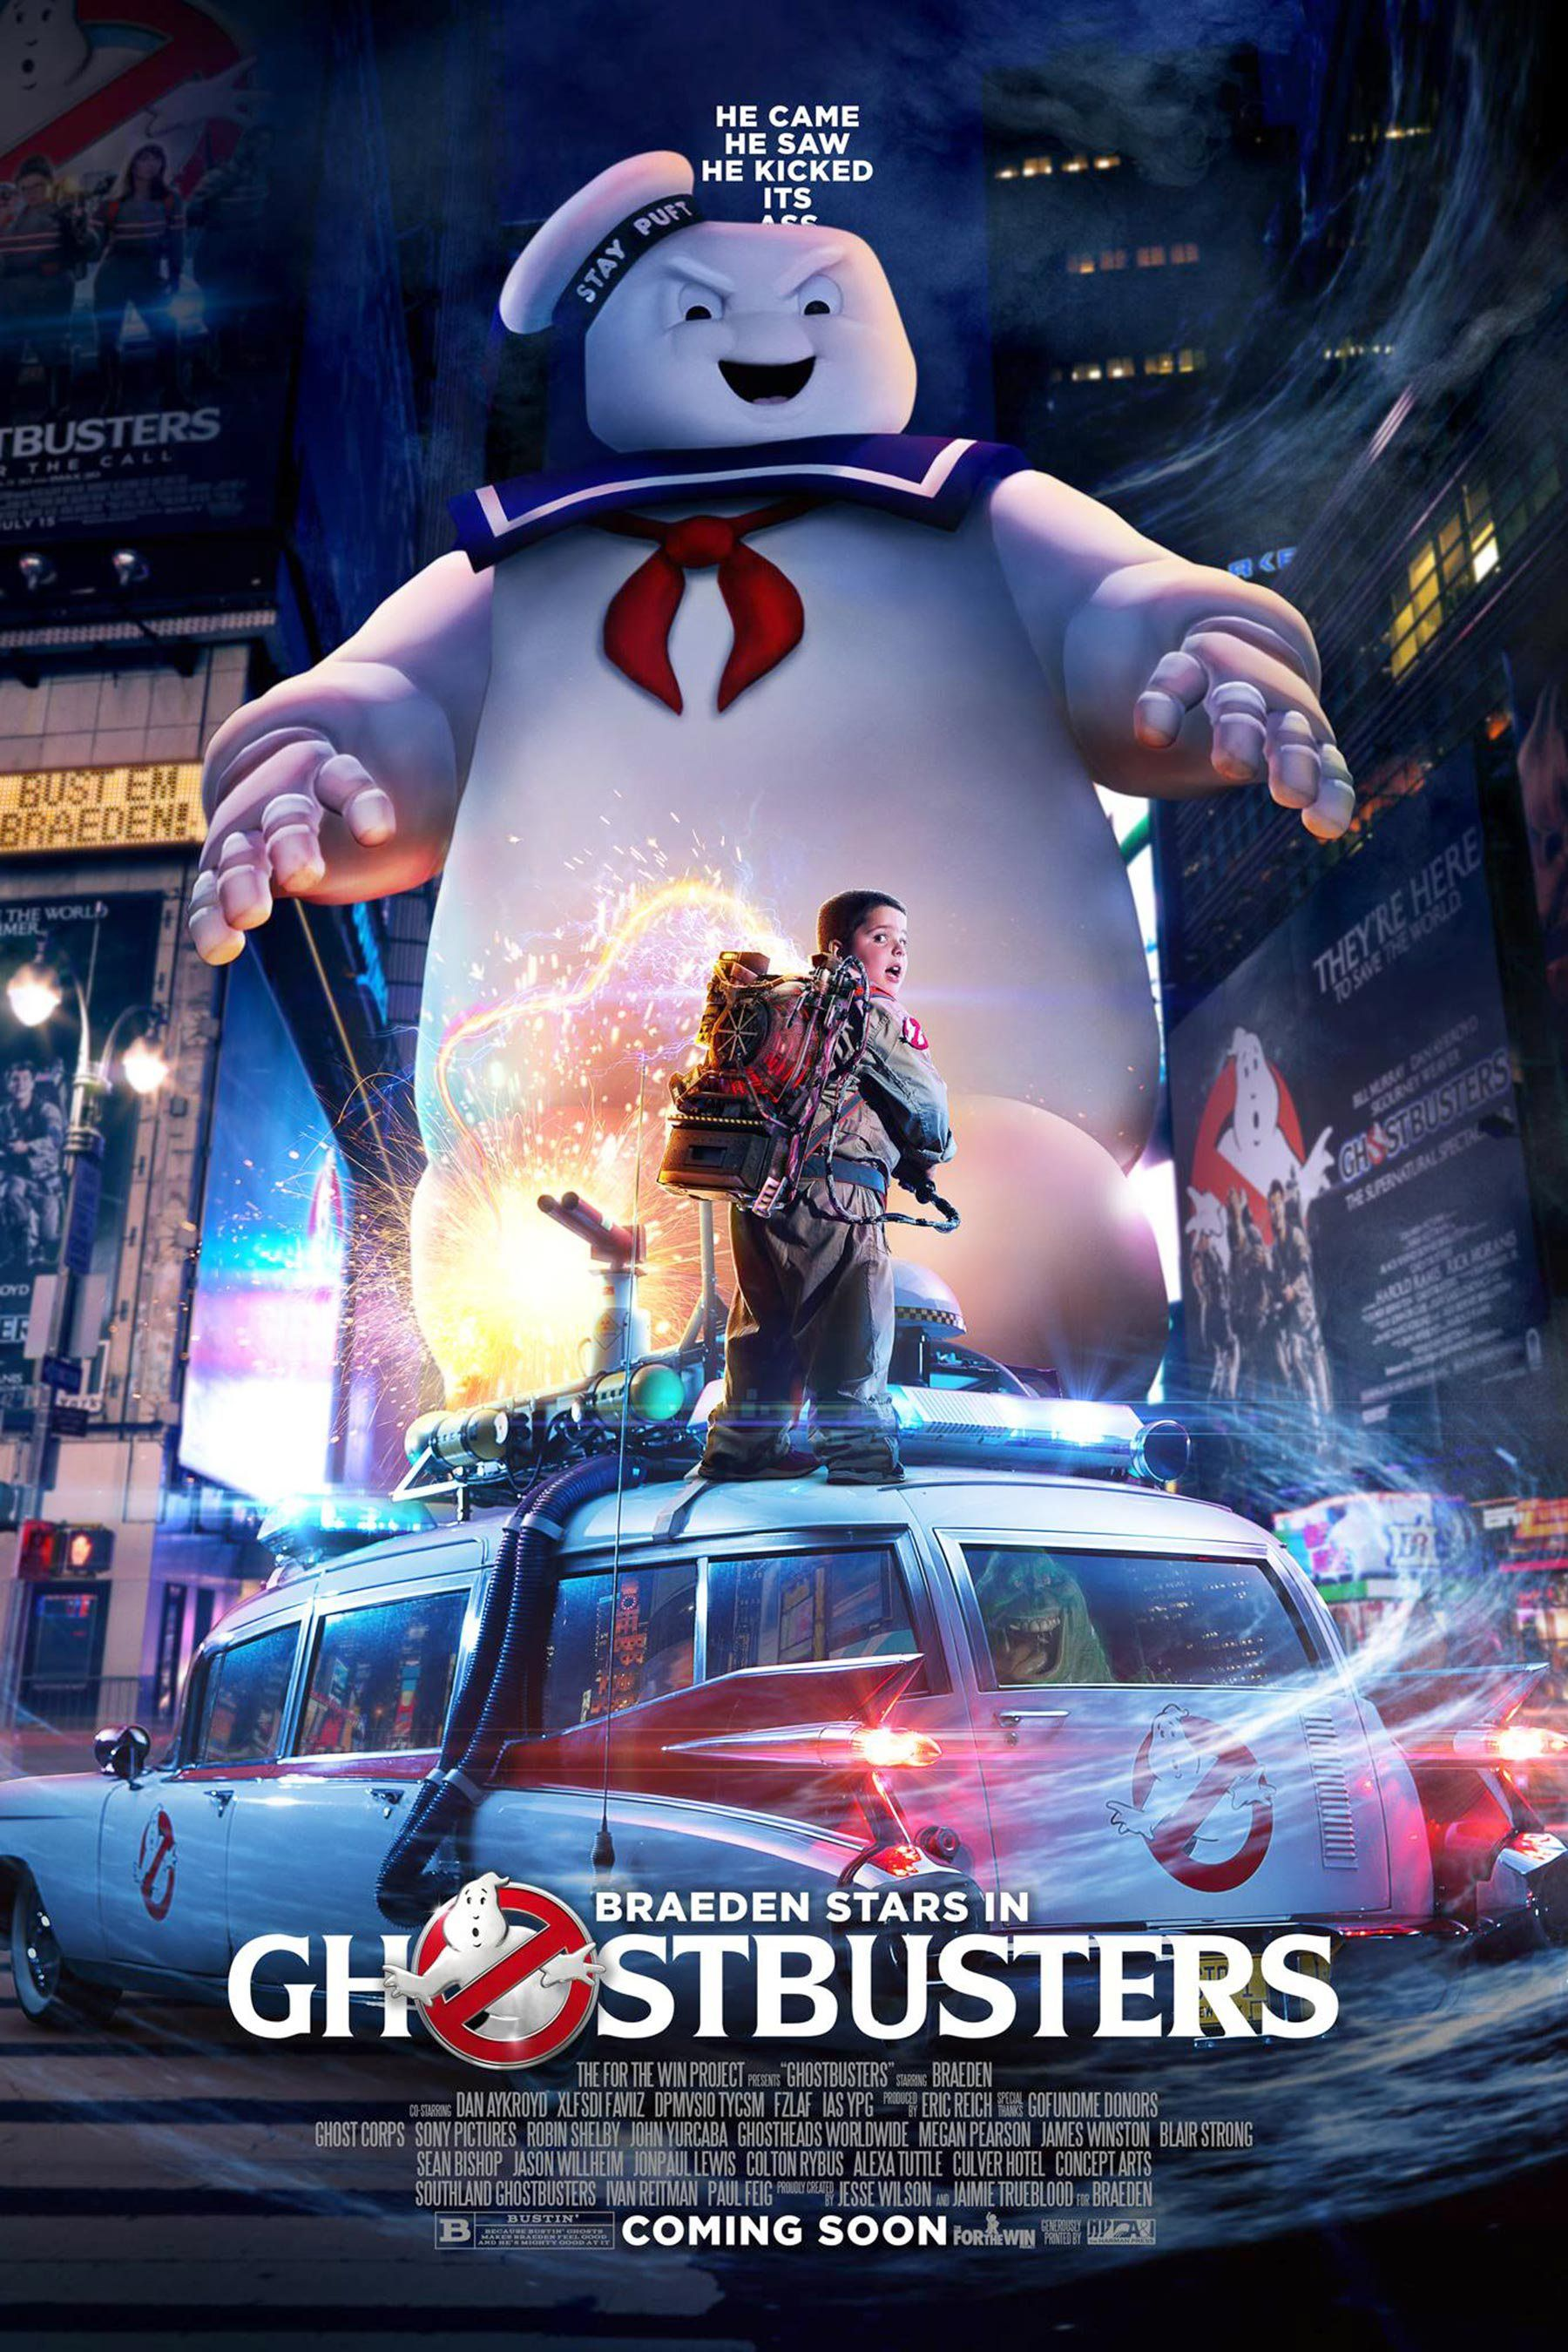 Ghosbusters Dan Aykroyd Helps Young Fan Live His Dream Ghostbusters Ghostbusters Movie The Real Ghostbusters